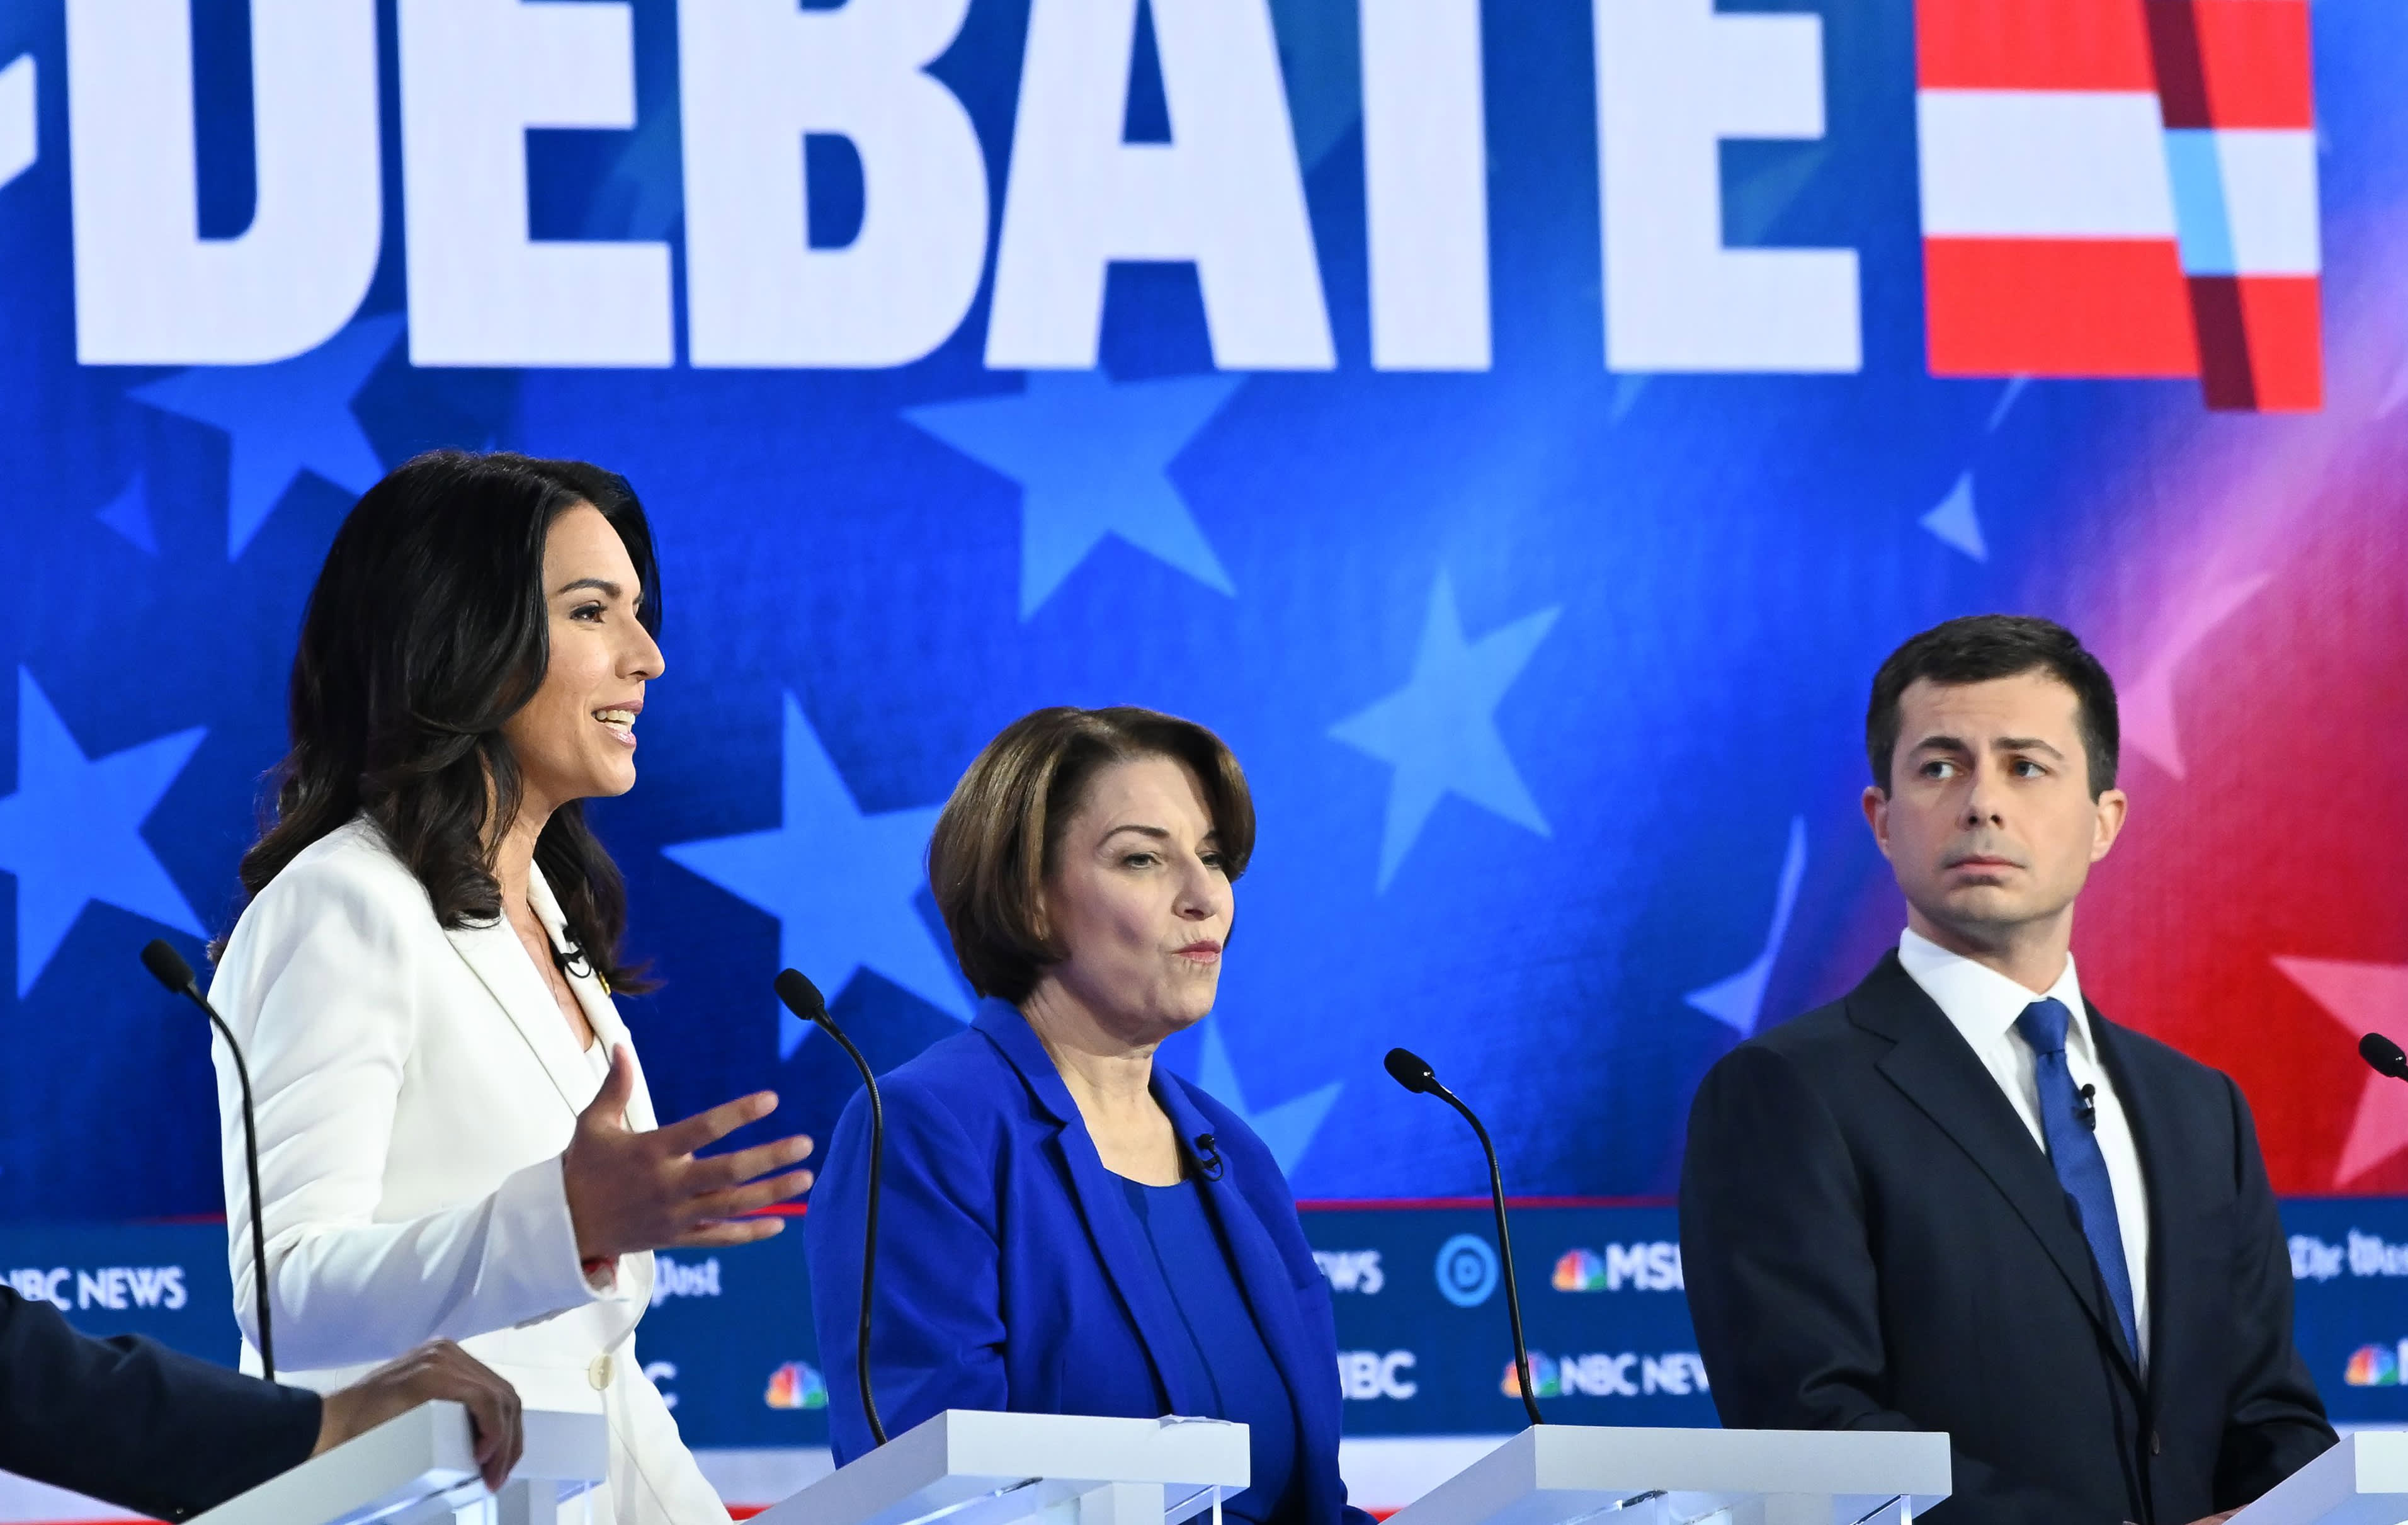 Here are the top moments from the fifth Democratic debate